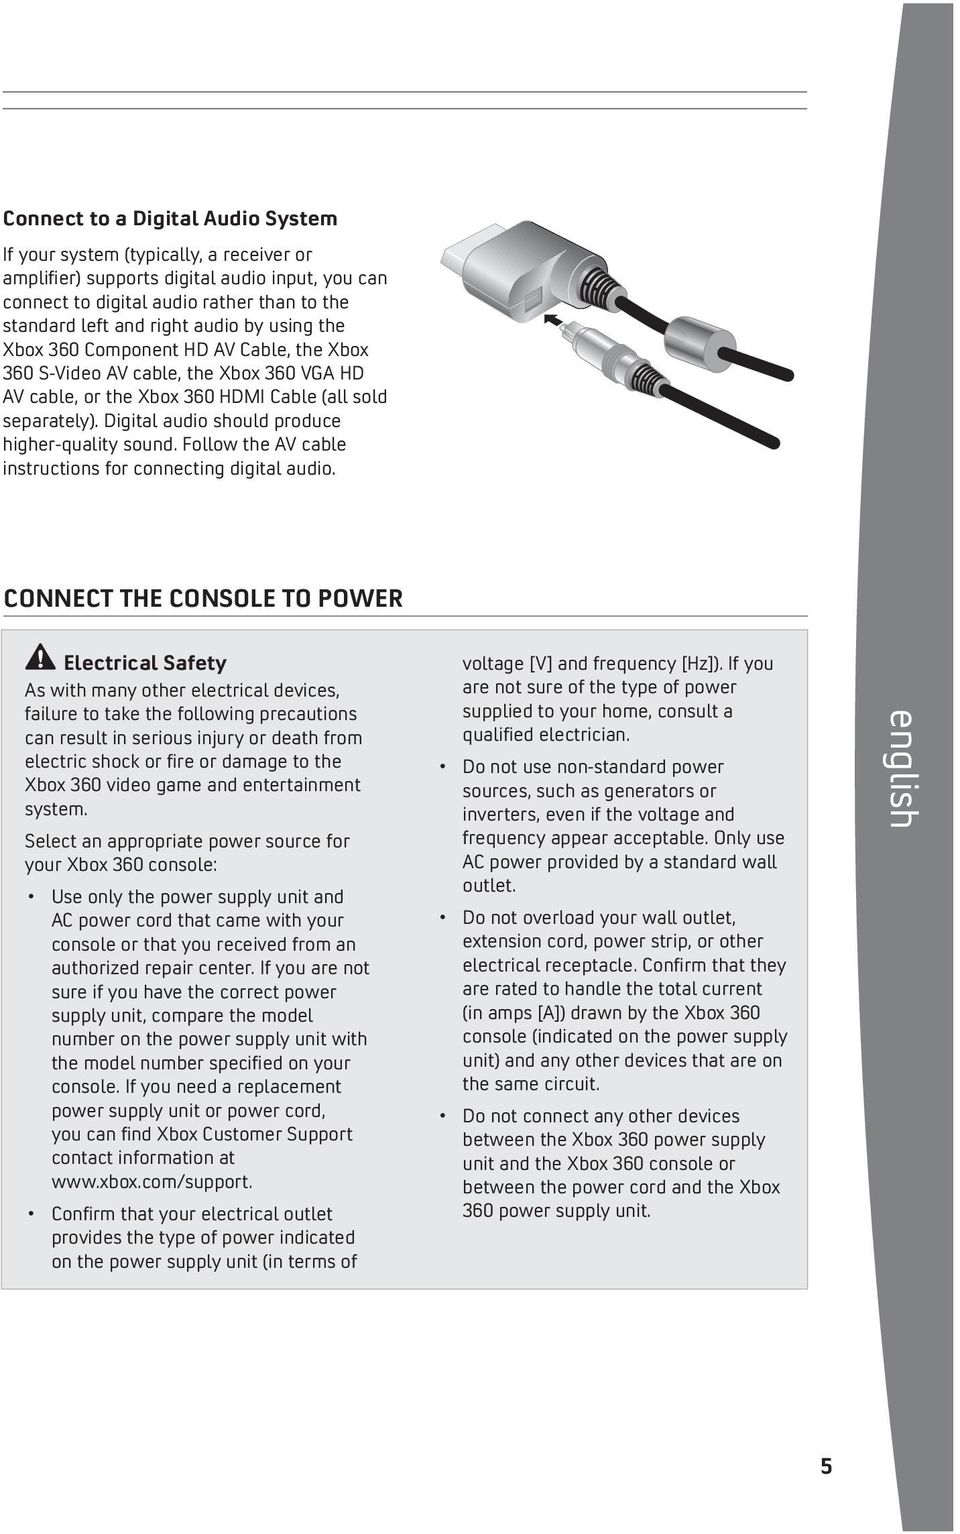 Digital audio should produce higher-quality sound. Follow the AV cable instructions for connecting digital audio.